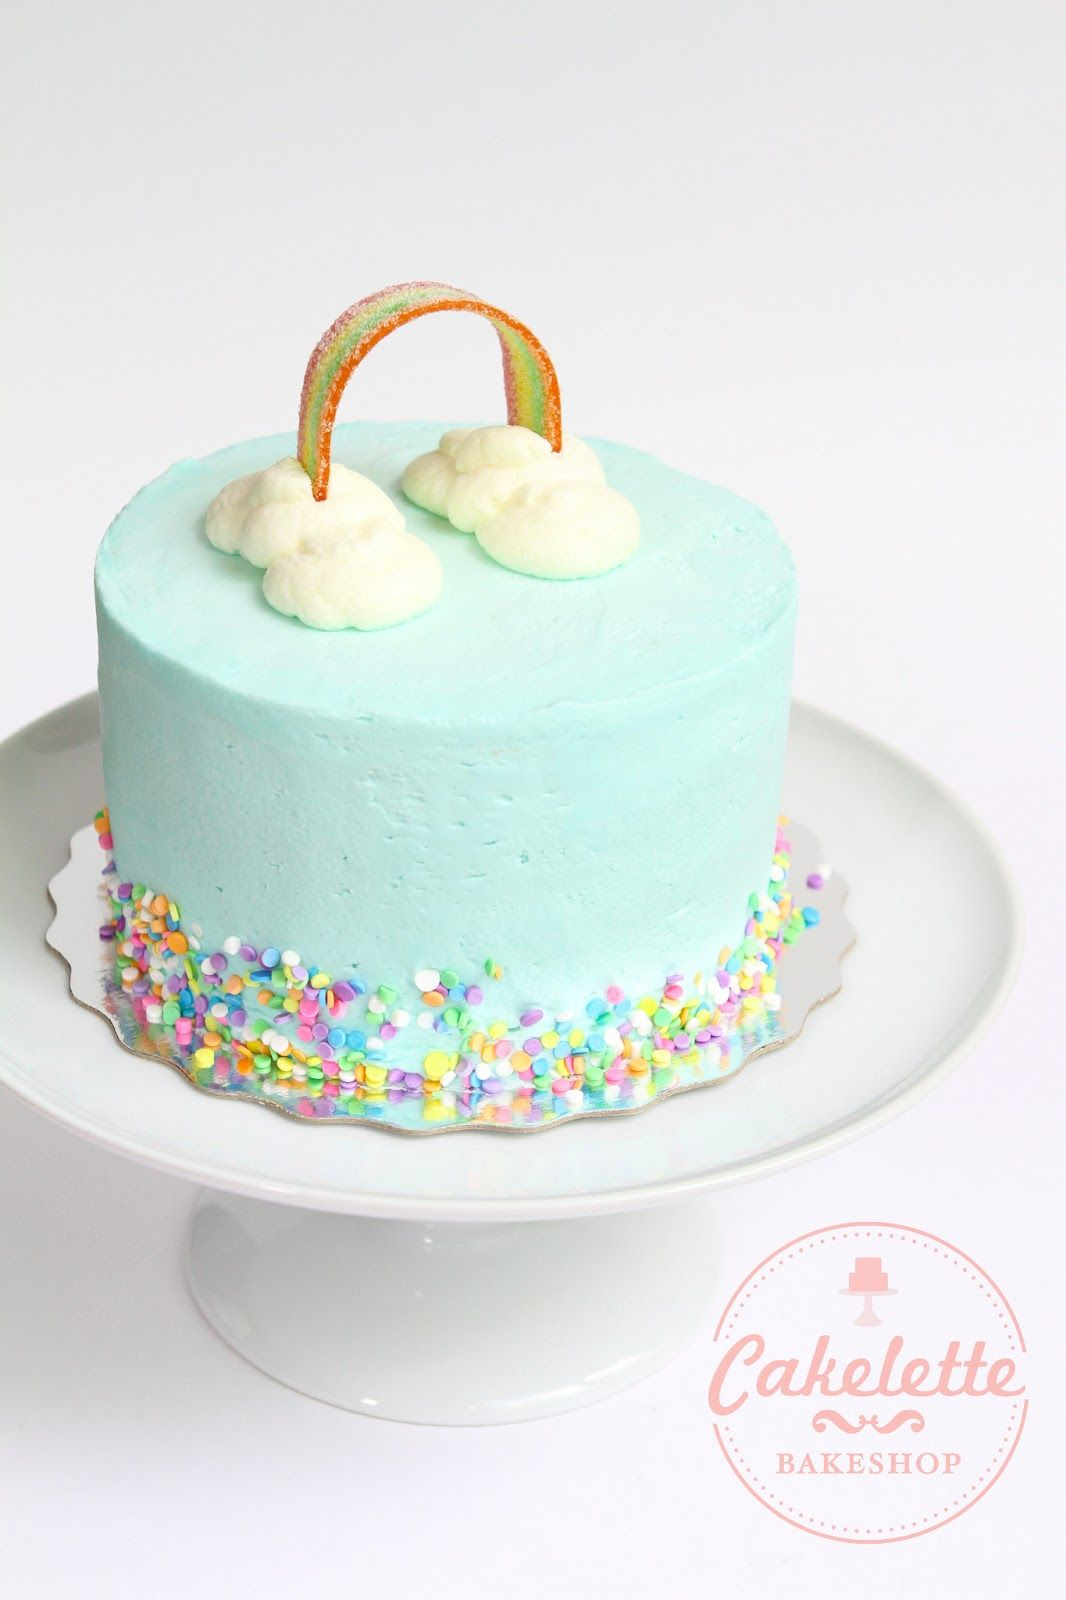 Admirable A Rainbow And Cloud Cake With Images Simple Birthday Cake Designs Funny Birthday Cards Online Elaedamsfinfo